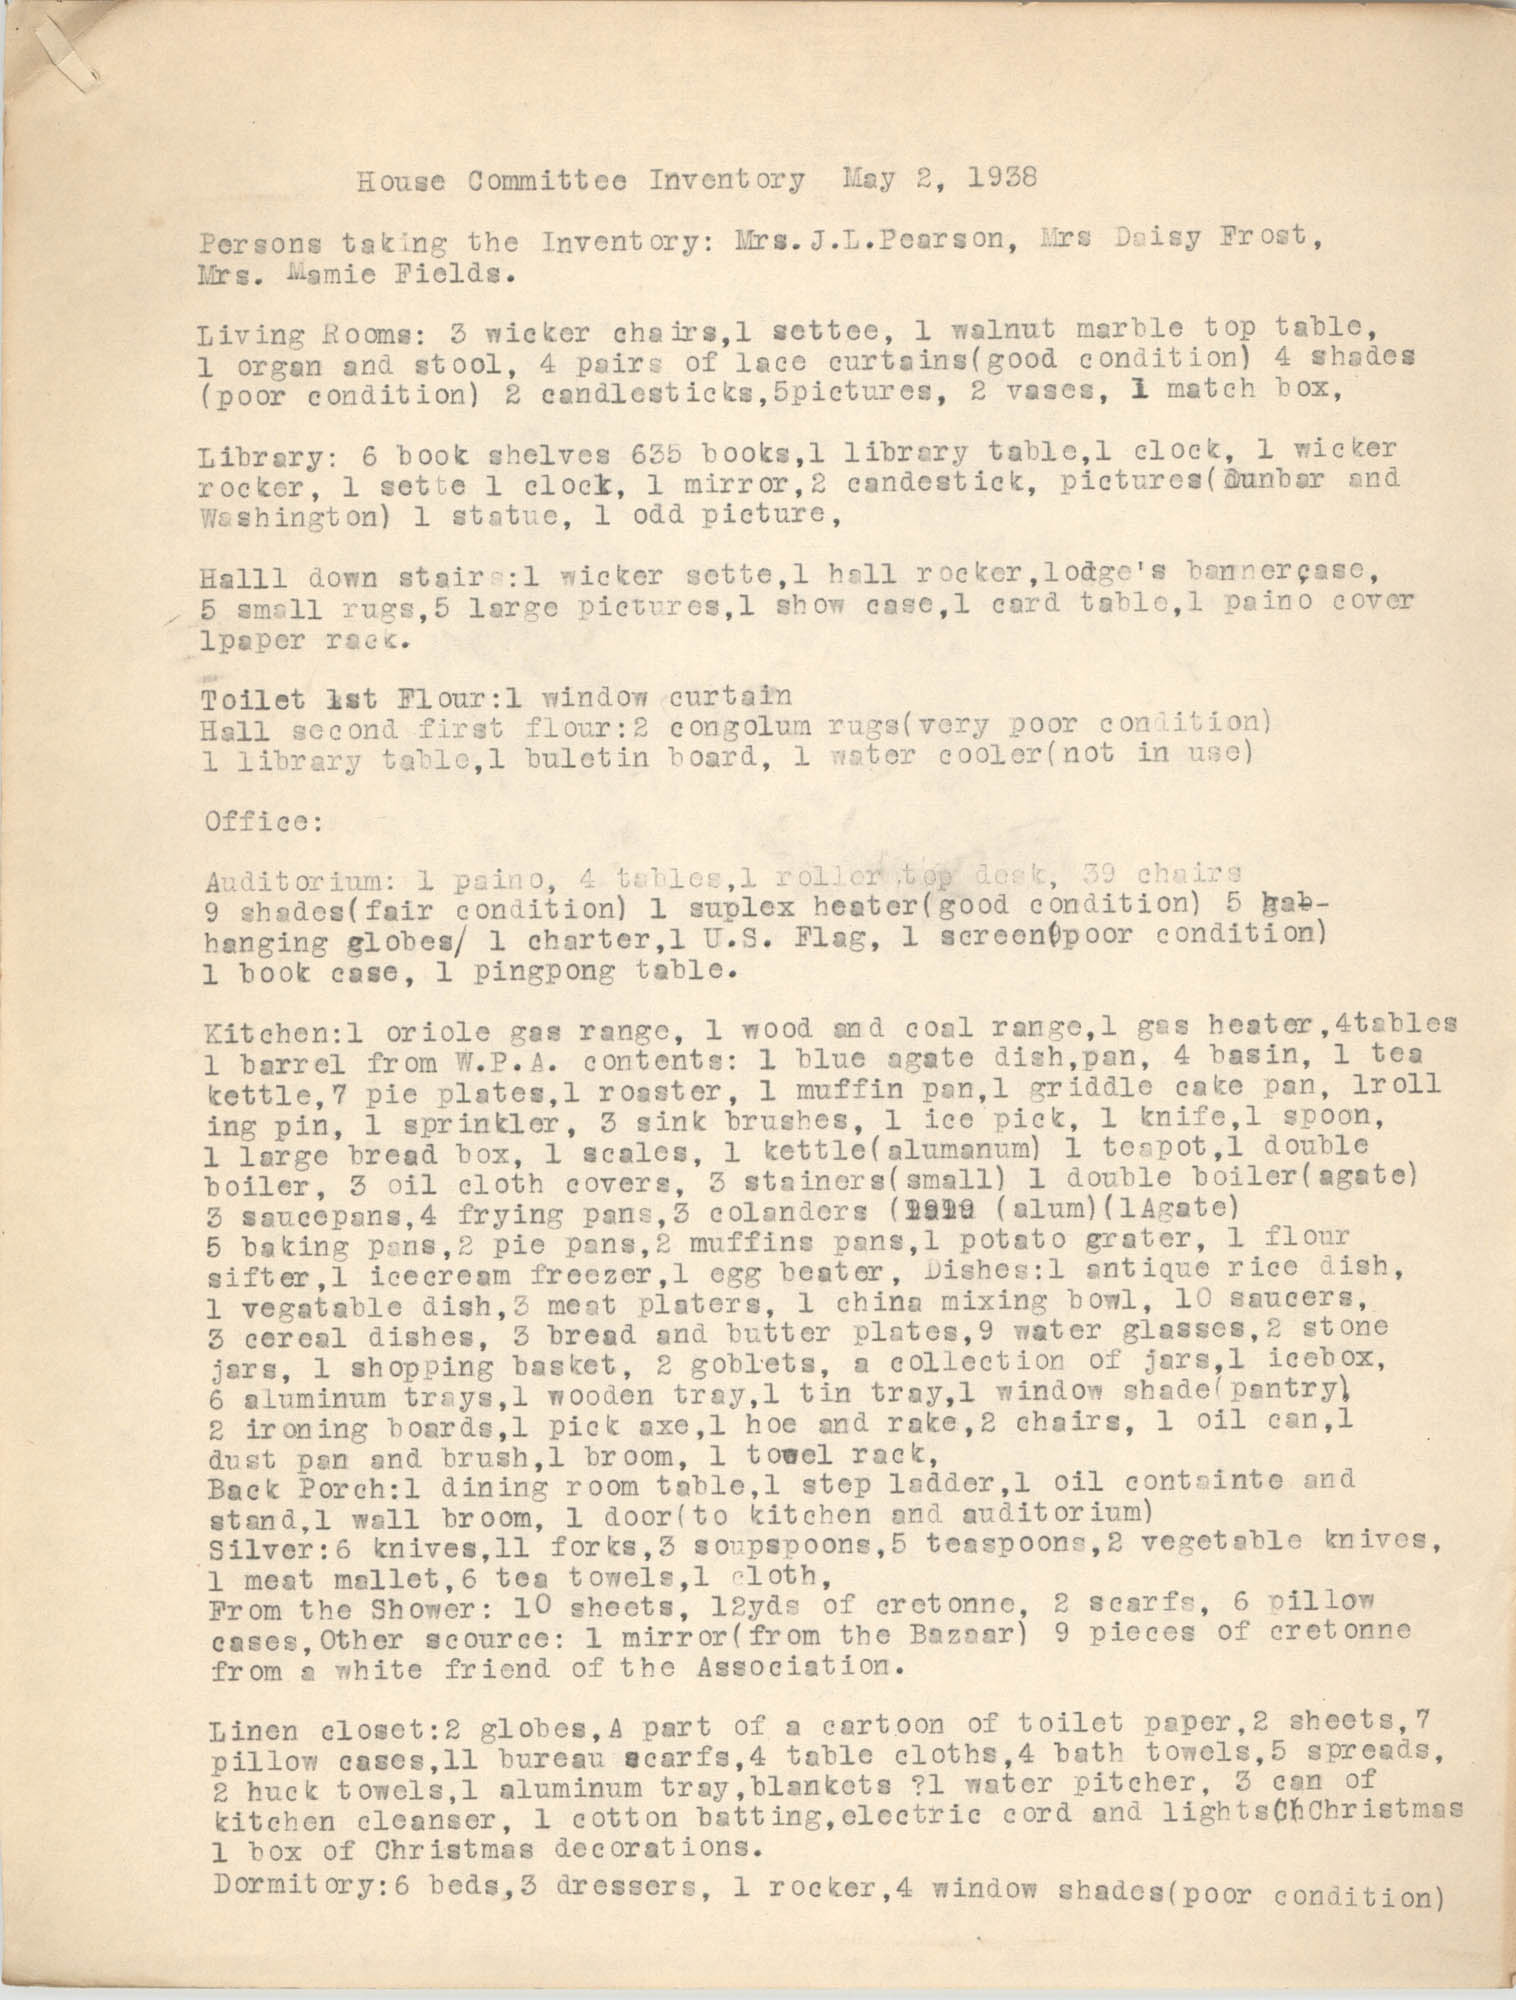 House Committee Inventory for the Coming Street Y.W.C.A., May 2, 1938